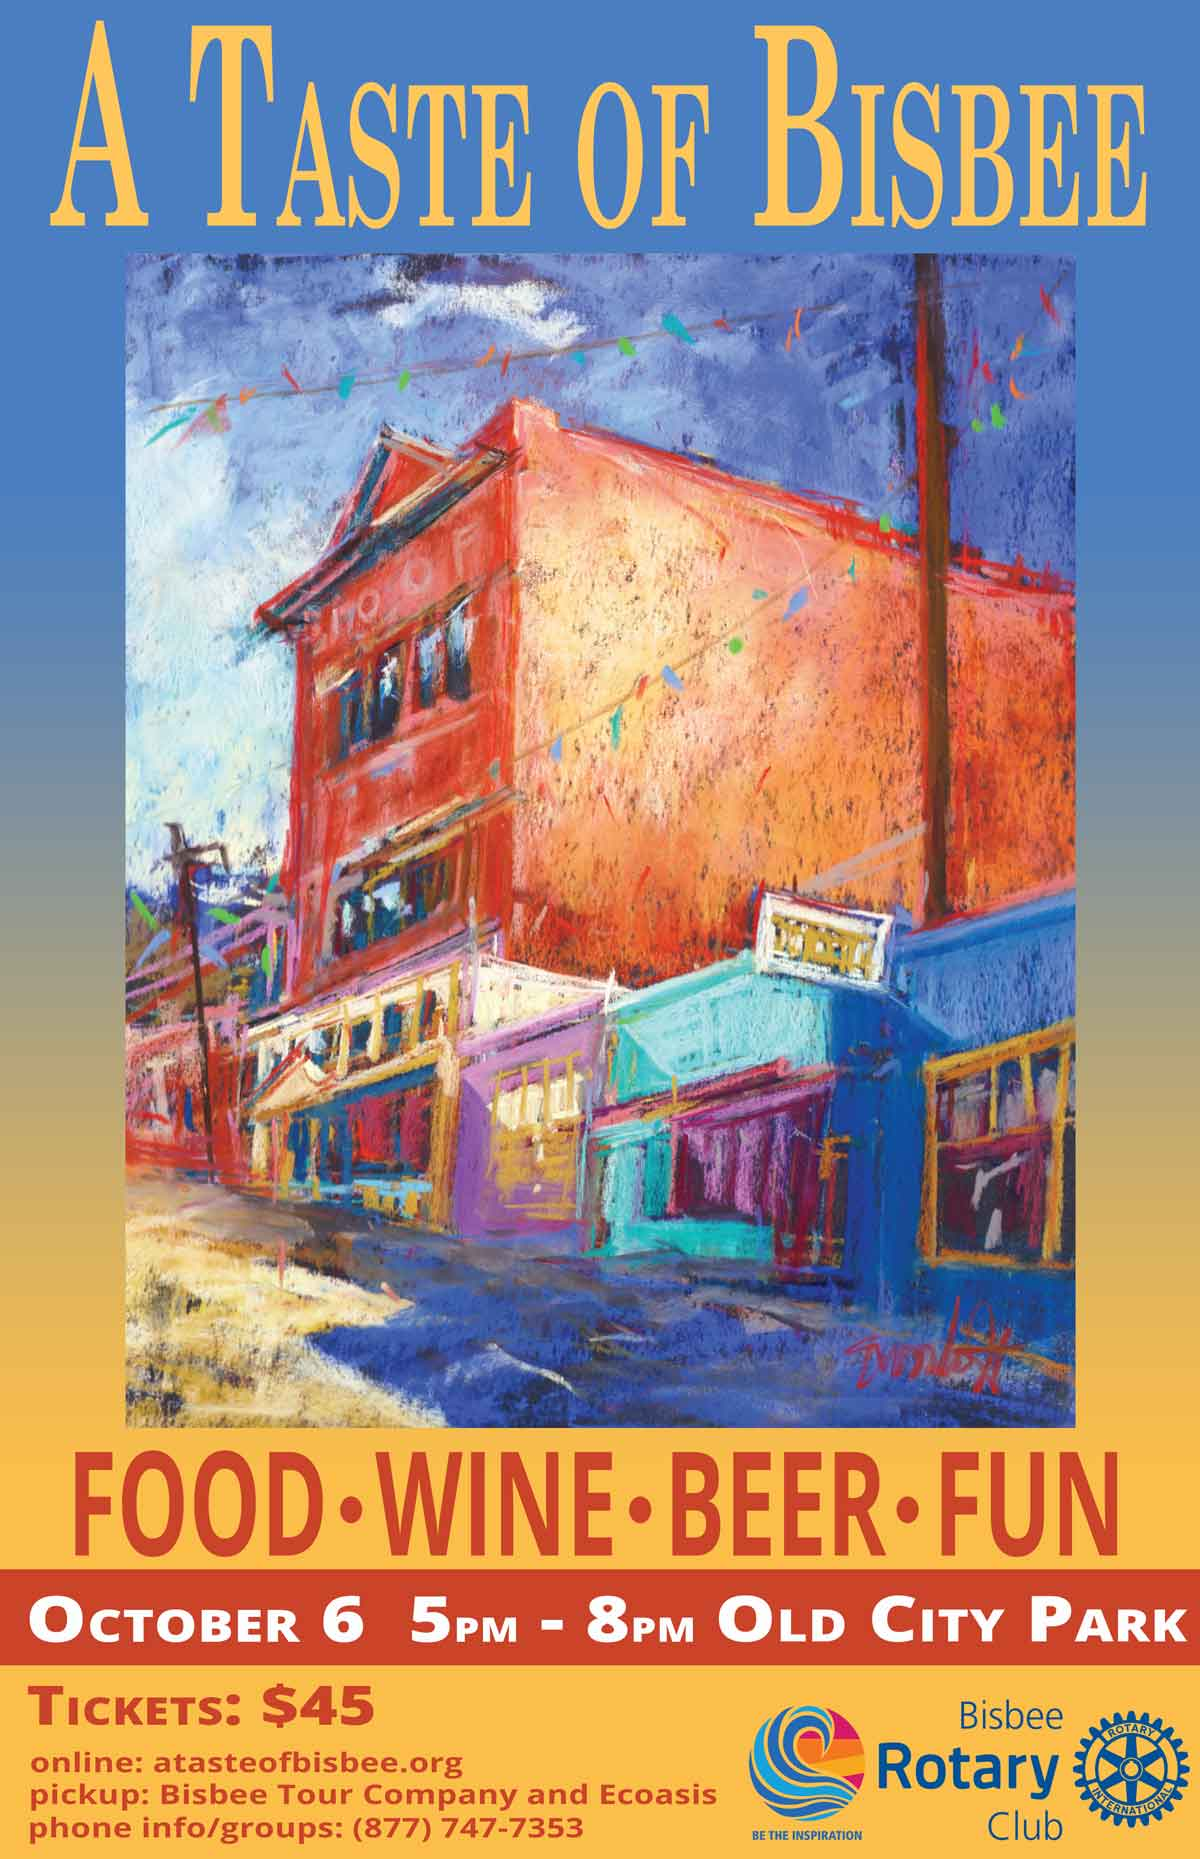 A Taste of Bisbee October 6